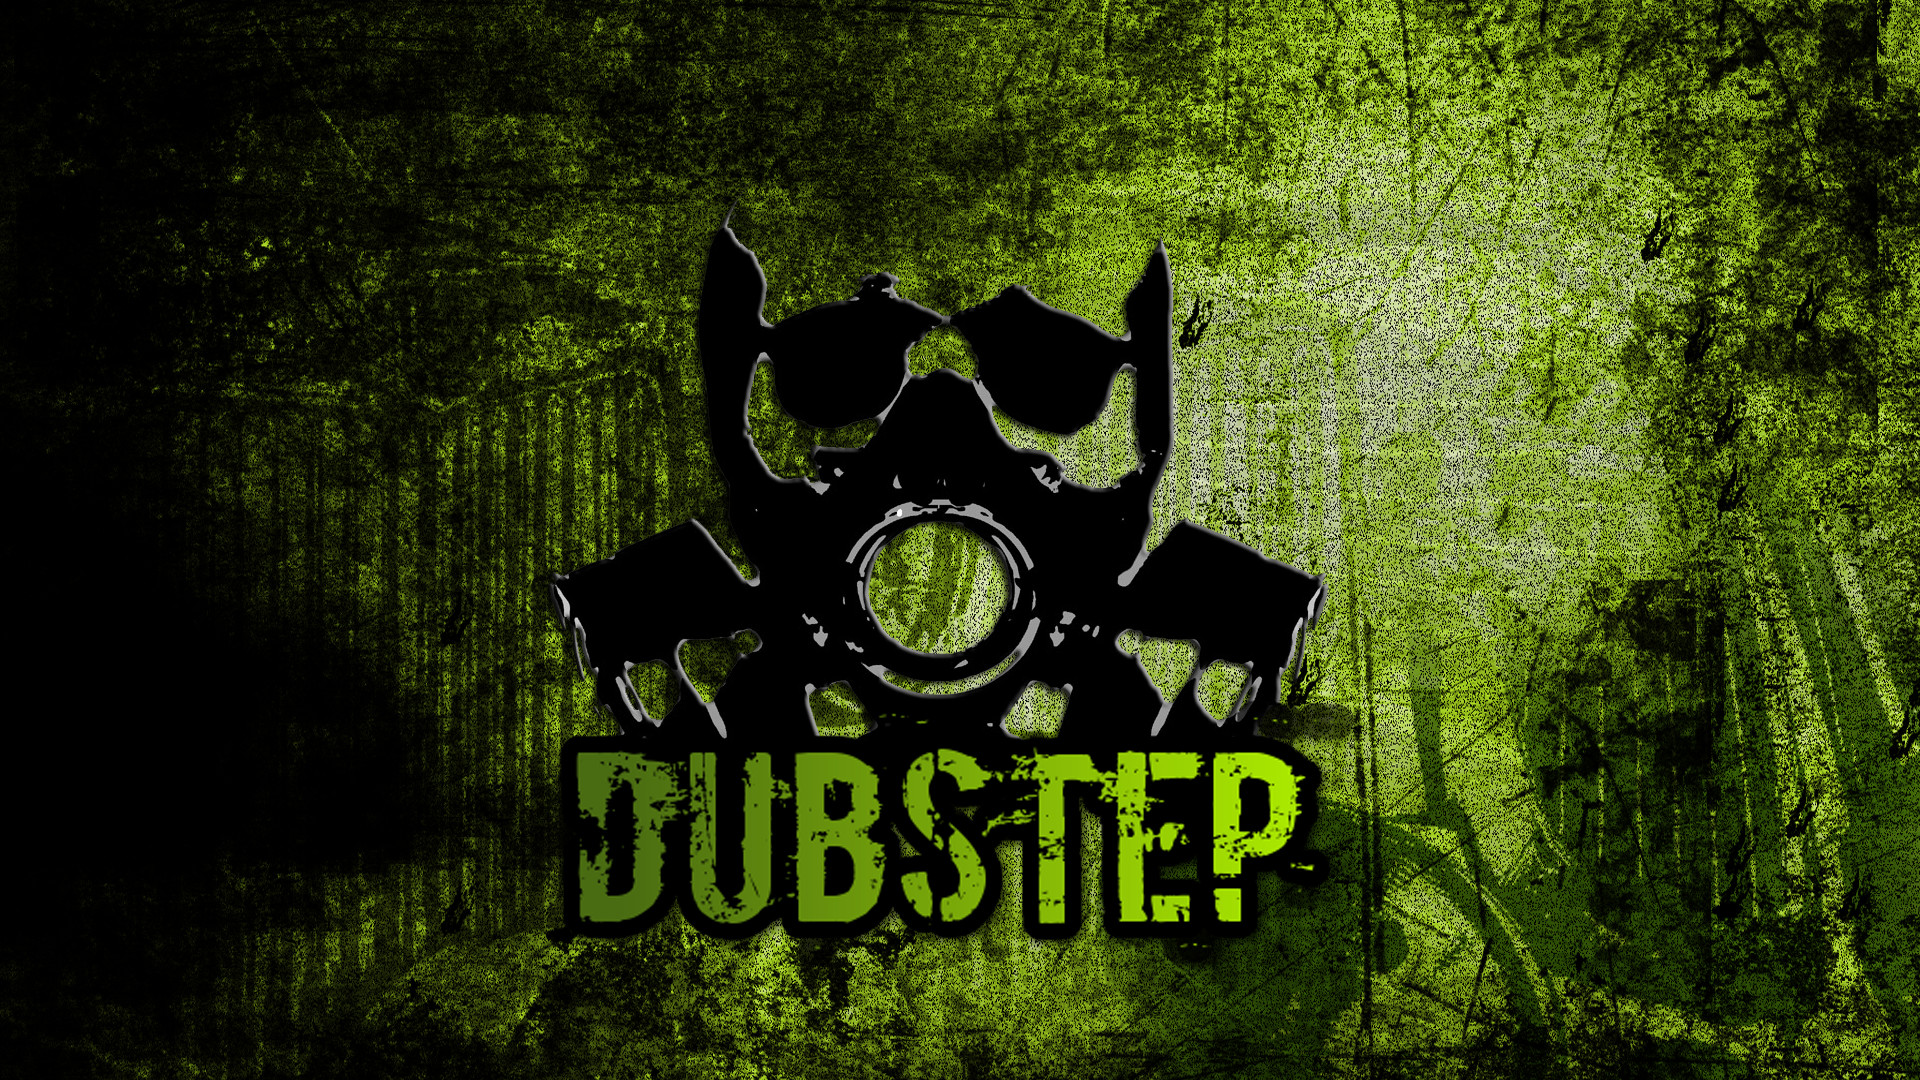 Res: 1920x1080, Sage Dubstep Grunge Wallpaper by thorpsy100 Sage Dubstep Grunge Wallpaper  by thorpsy100